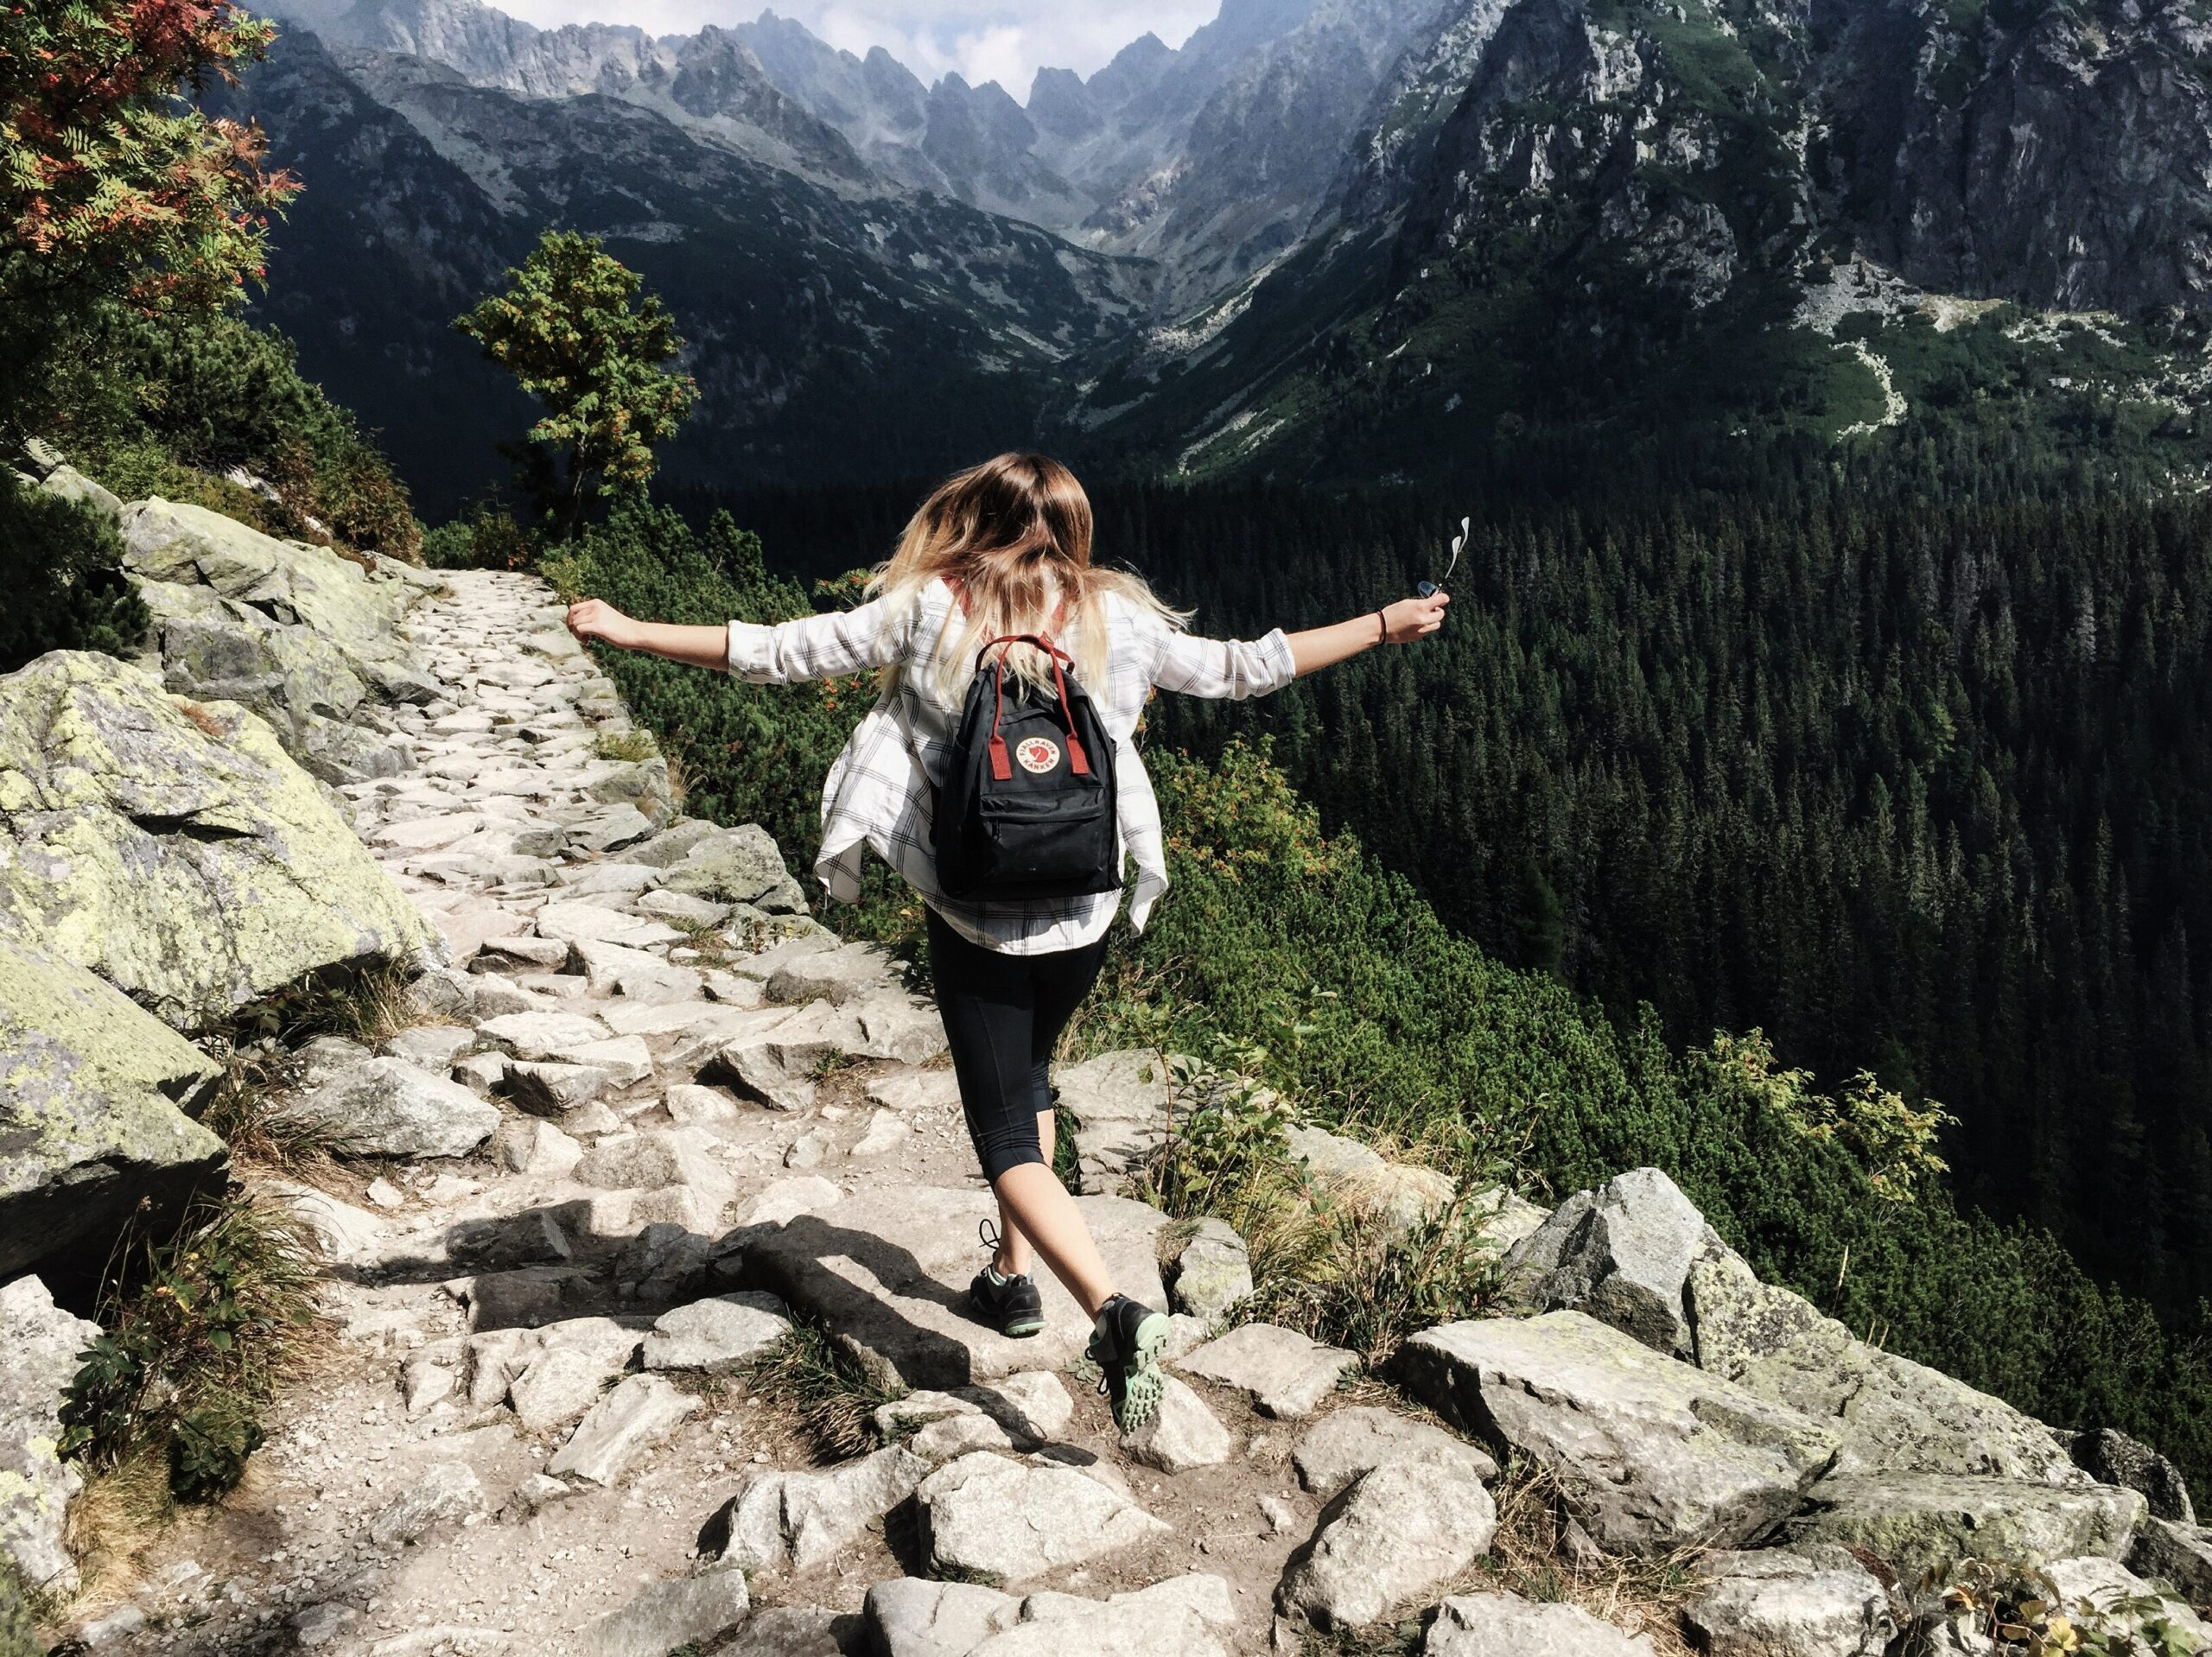 9-Hiking-Essentials-for-Safer-Hikes-2-scaled.